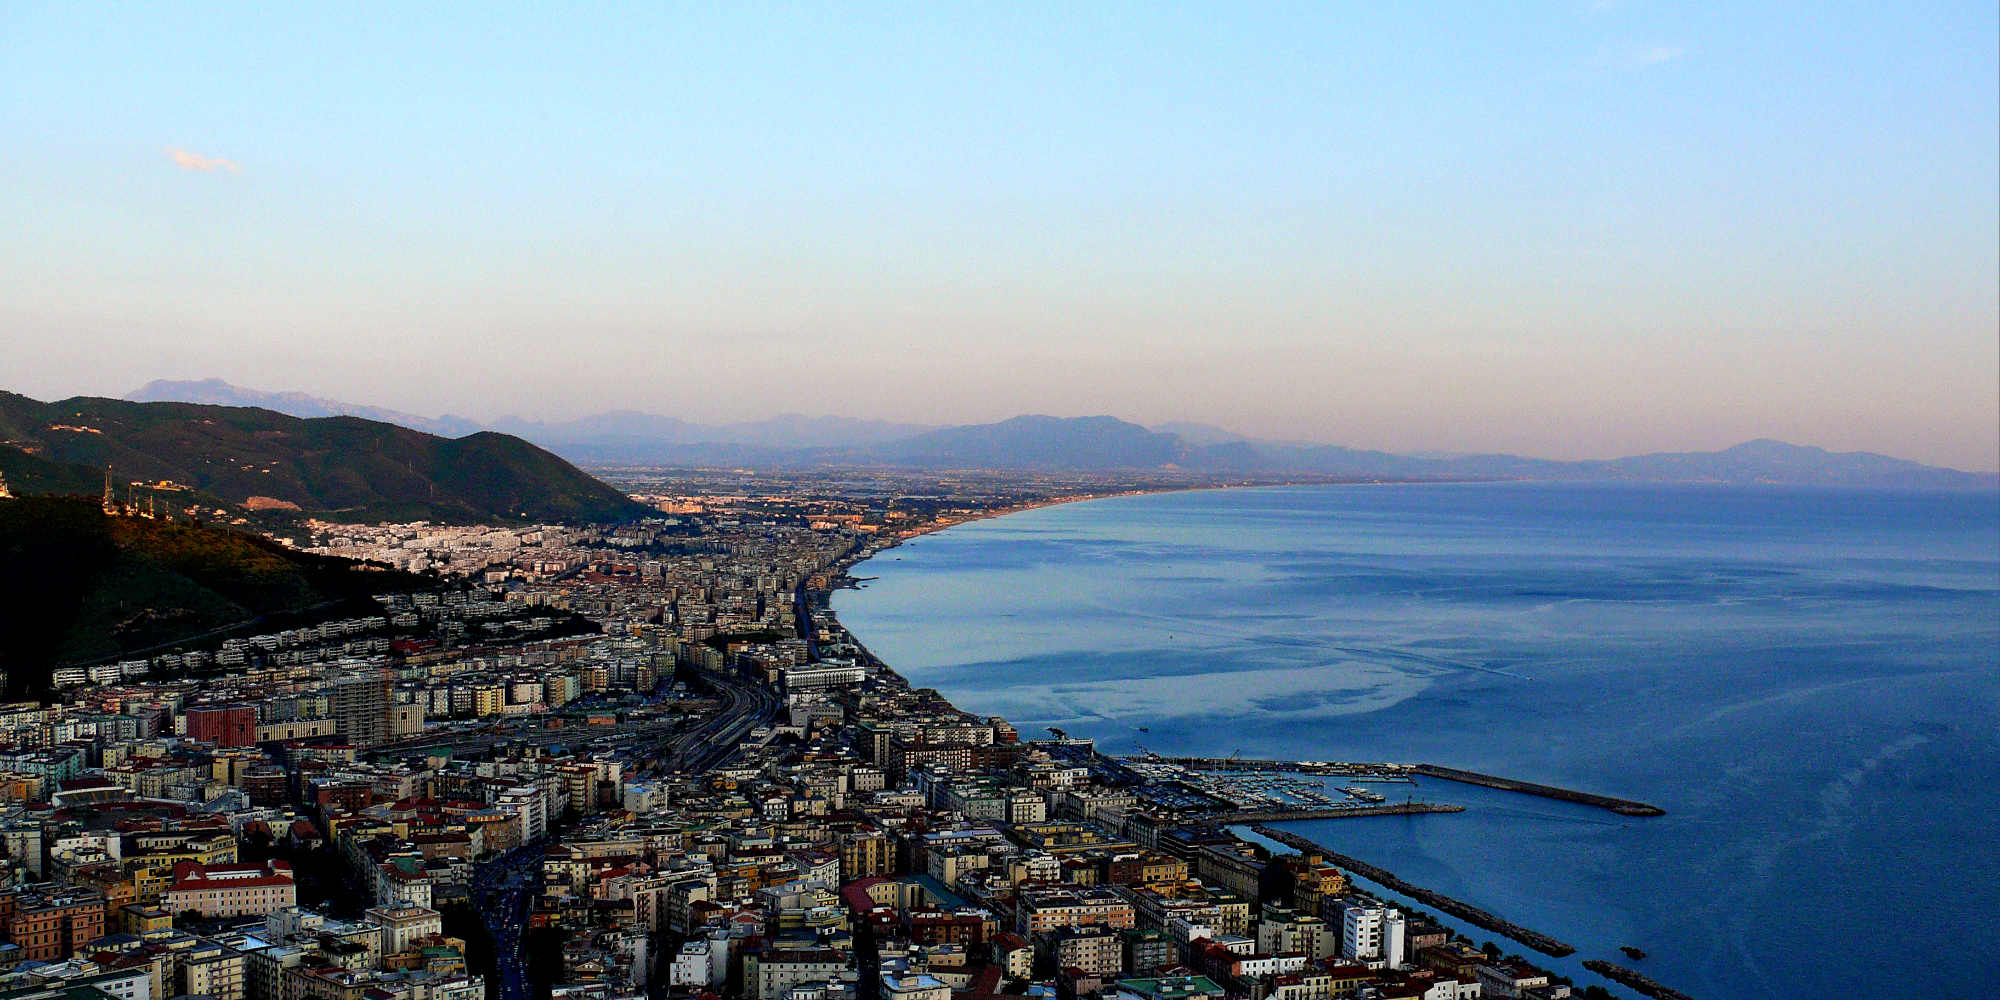 , GASTRONOMIC ITINERARIES: SALERNO, CILENTO AND THE AMALFI COAST, Foodiestrip.blog